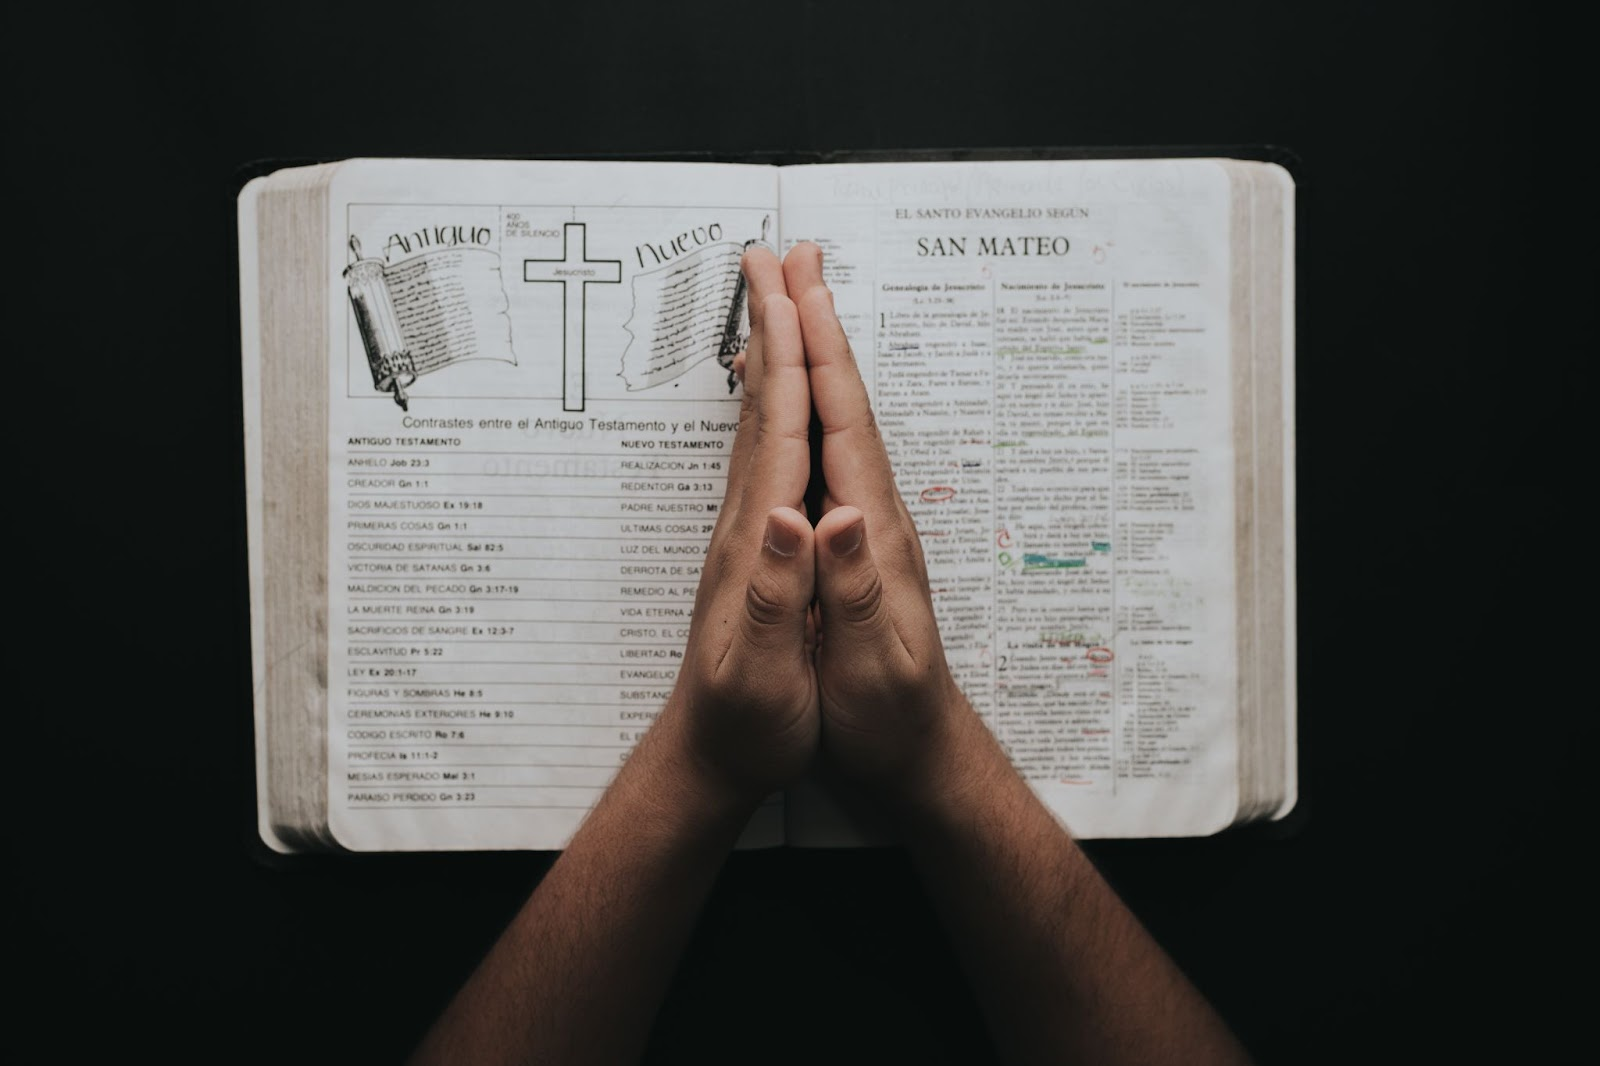 Hands in prayer on the Bible